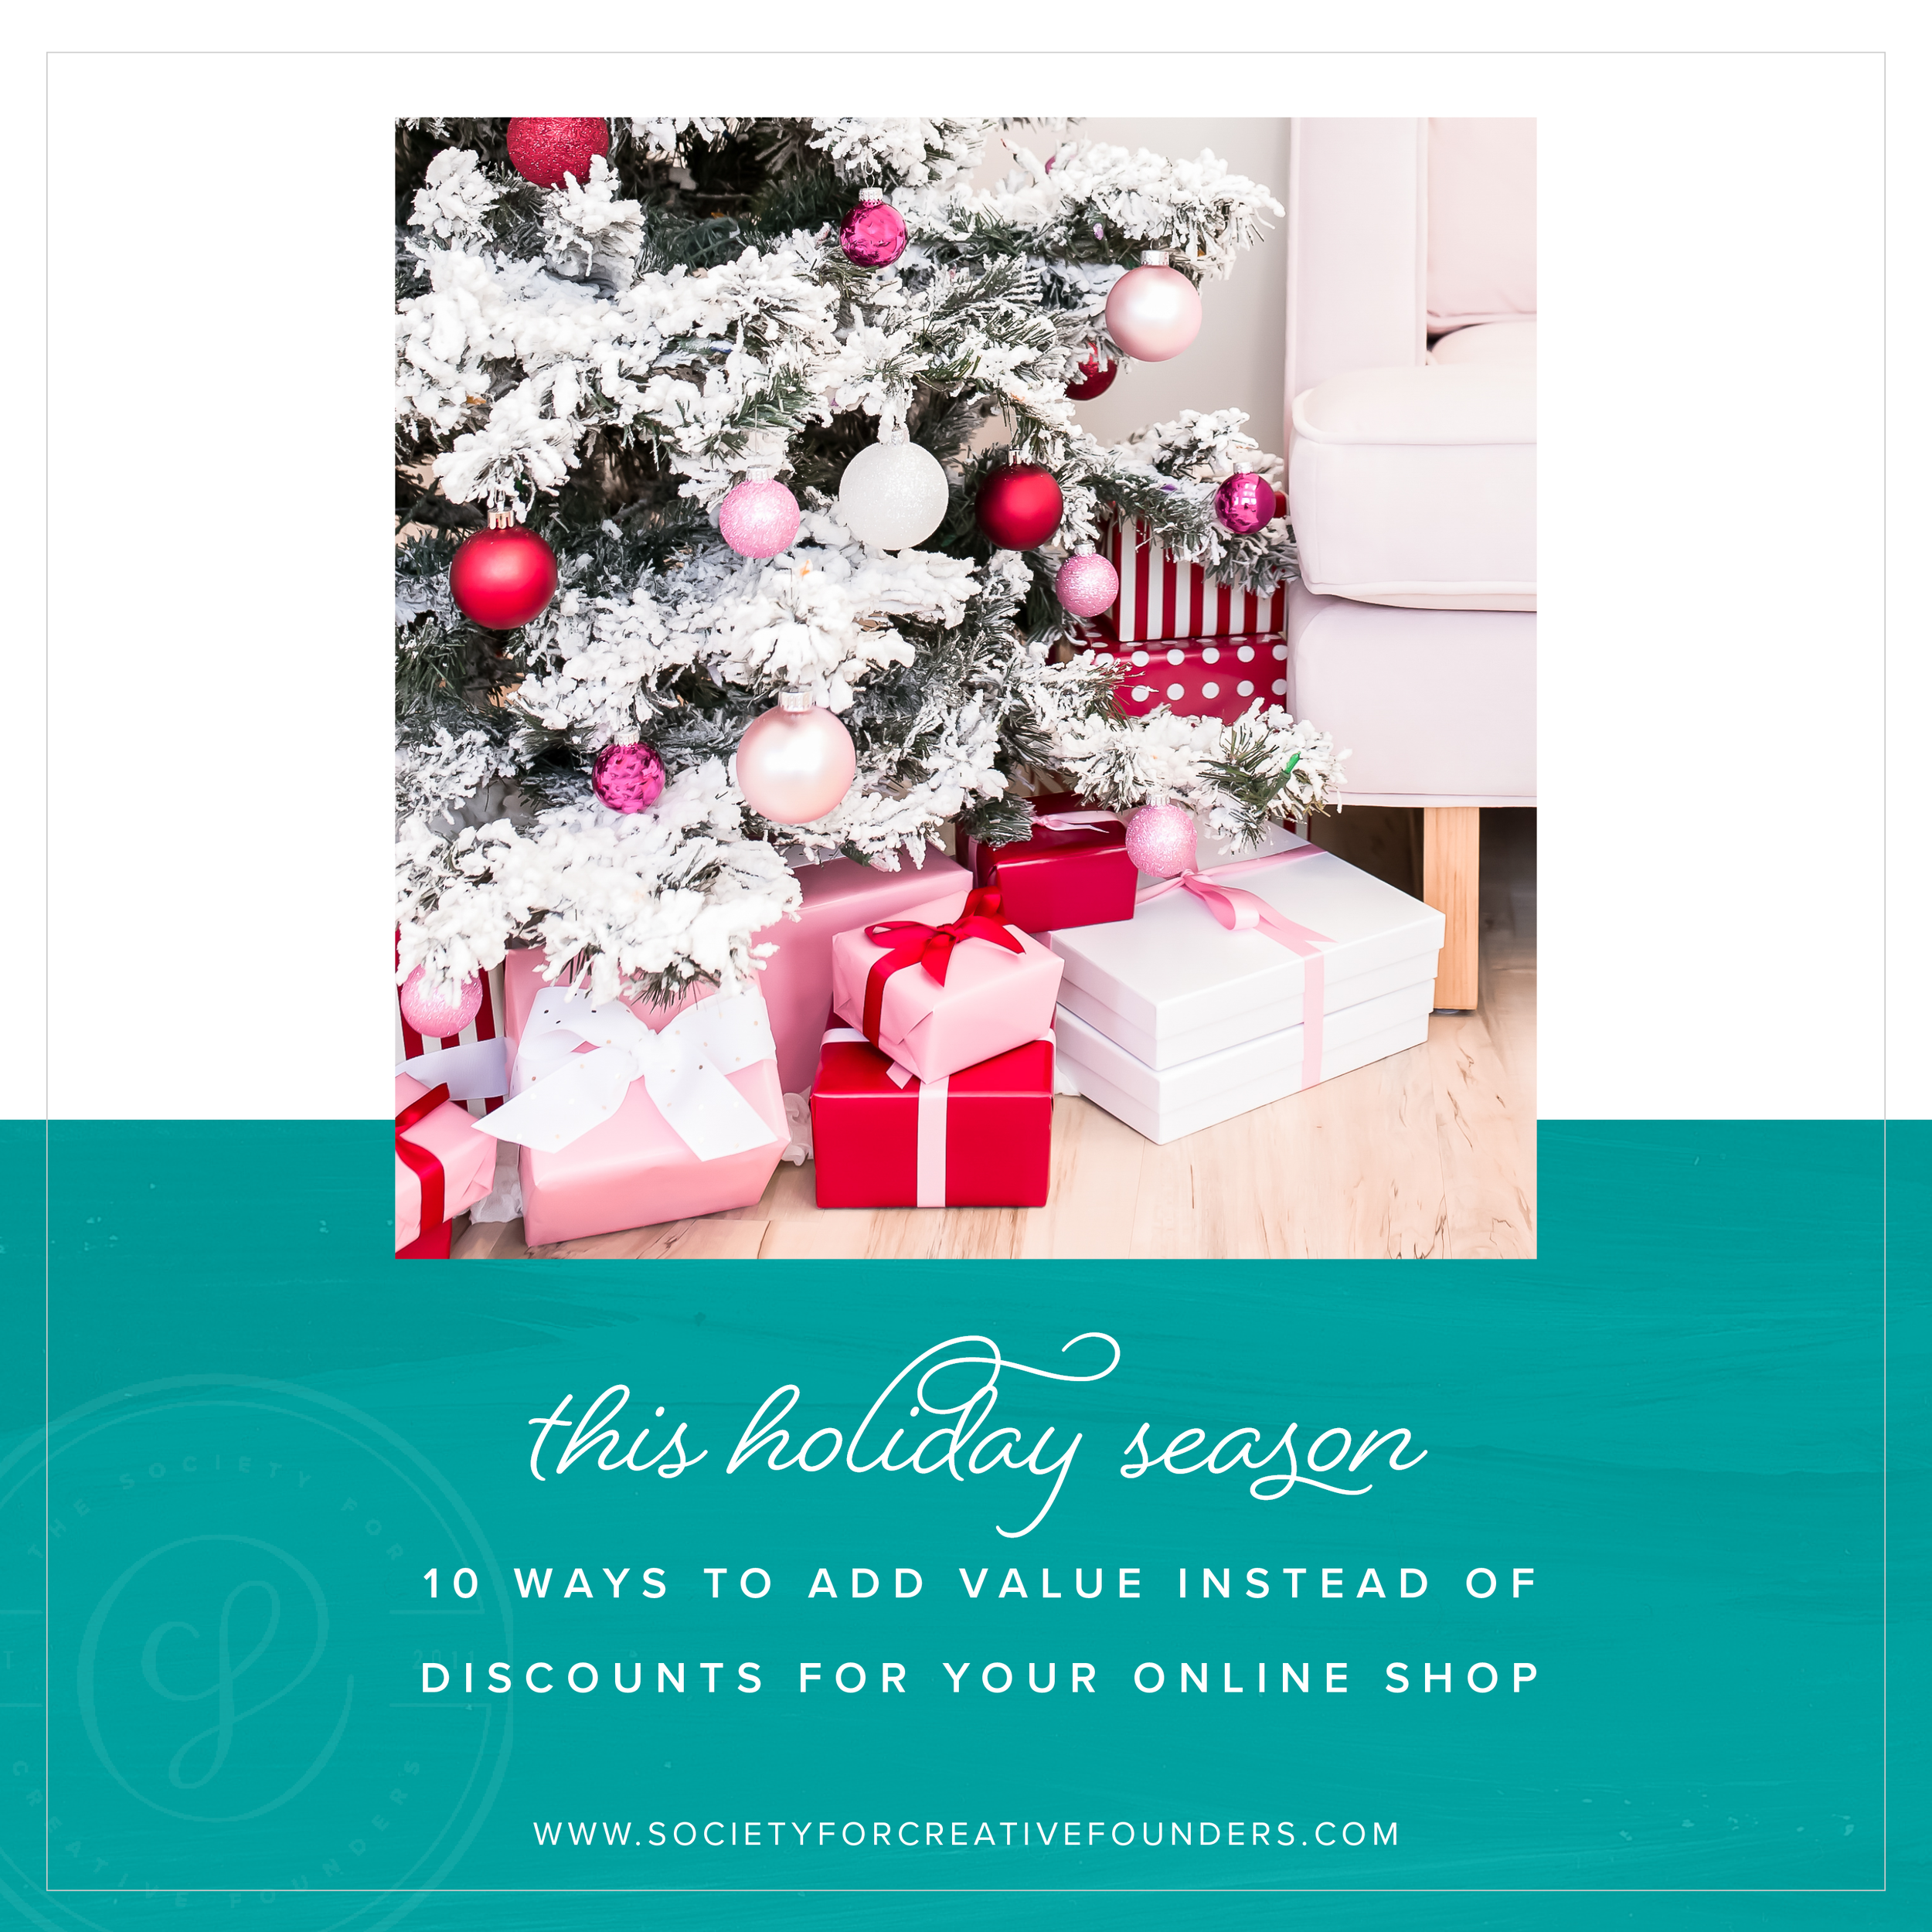 10 Ways to Add Value and not discount your products this holiday season - Society for Creative Founders